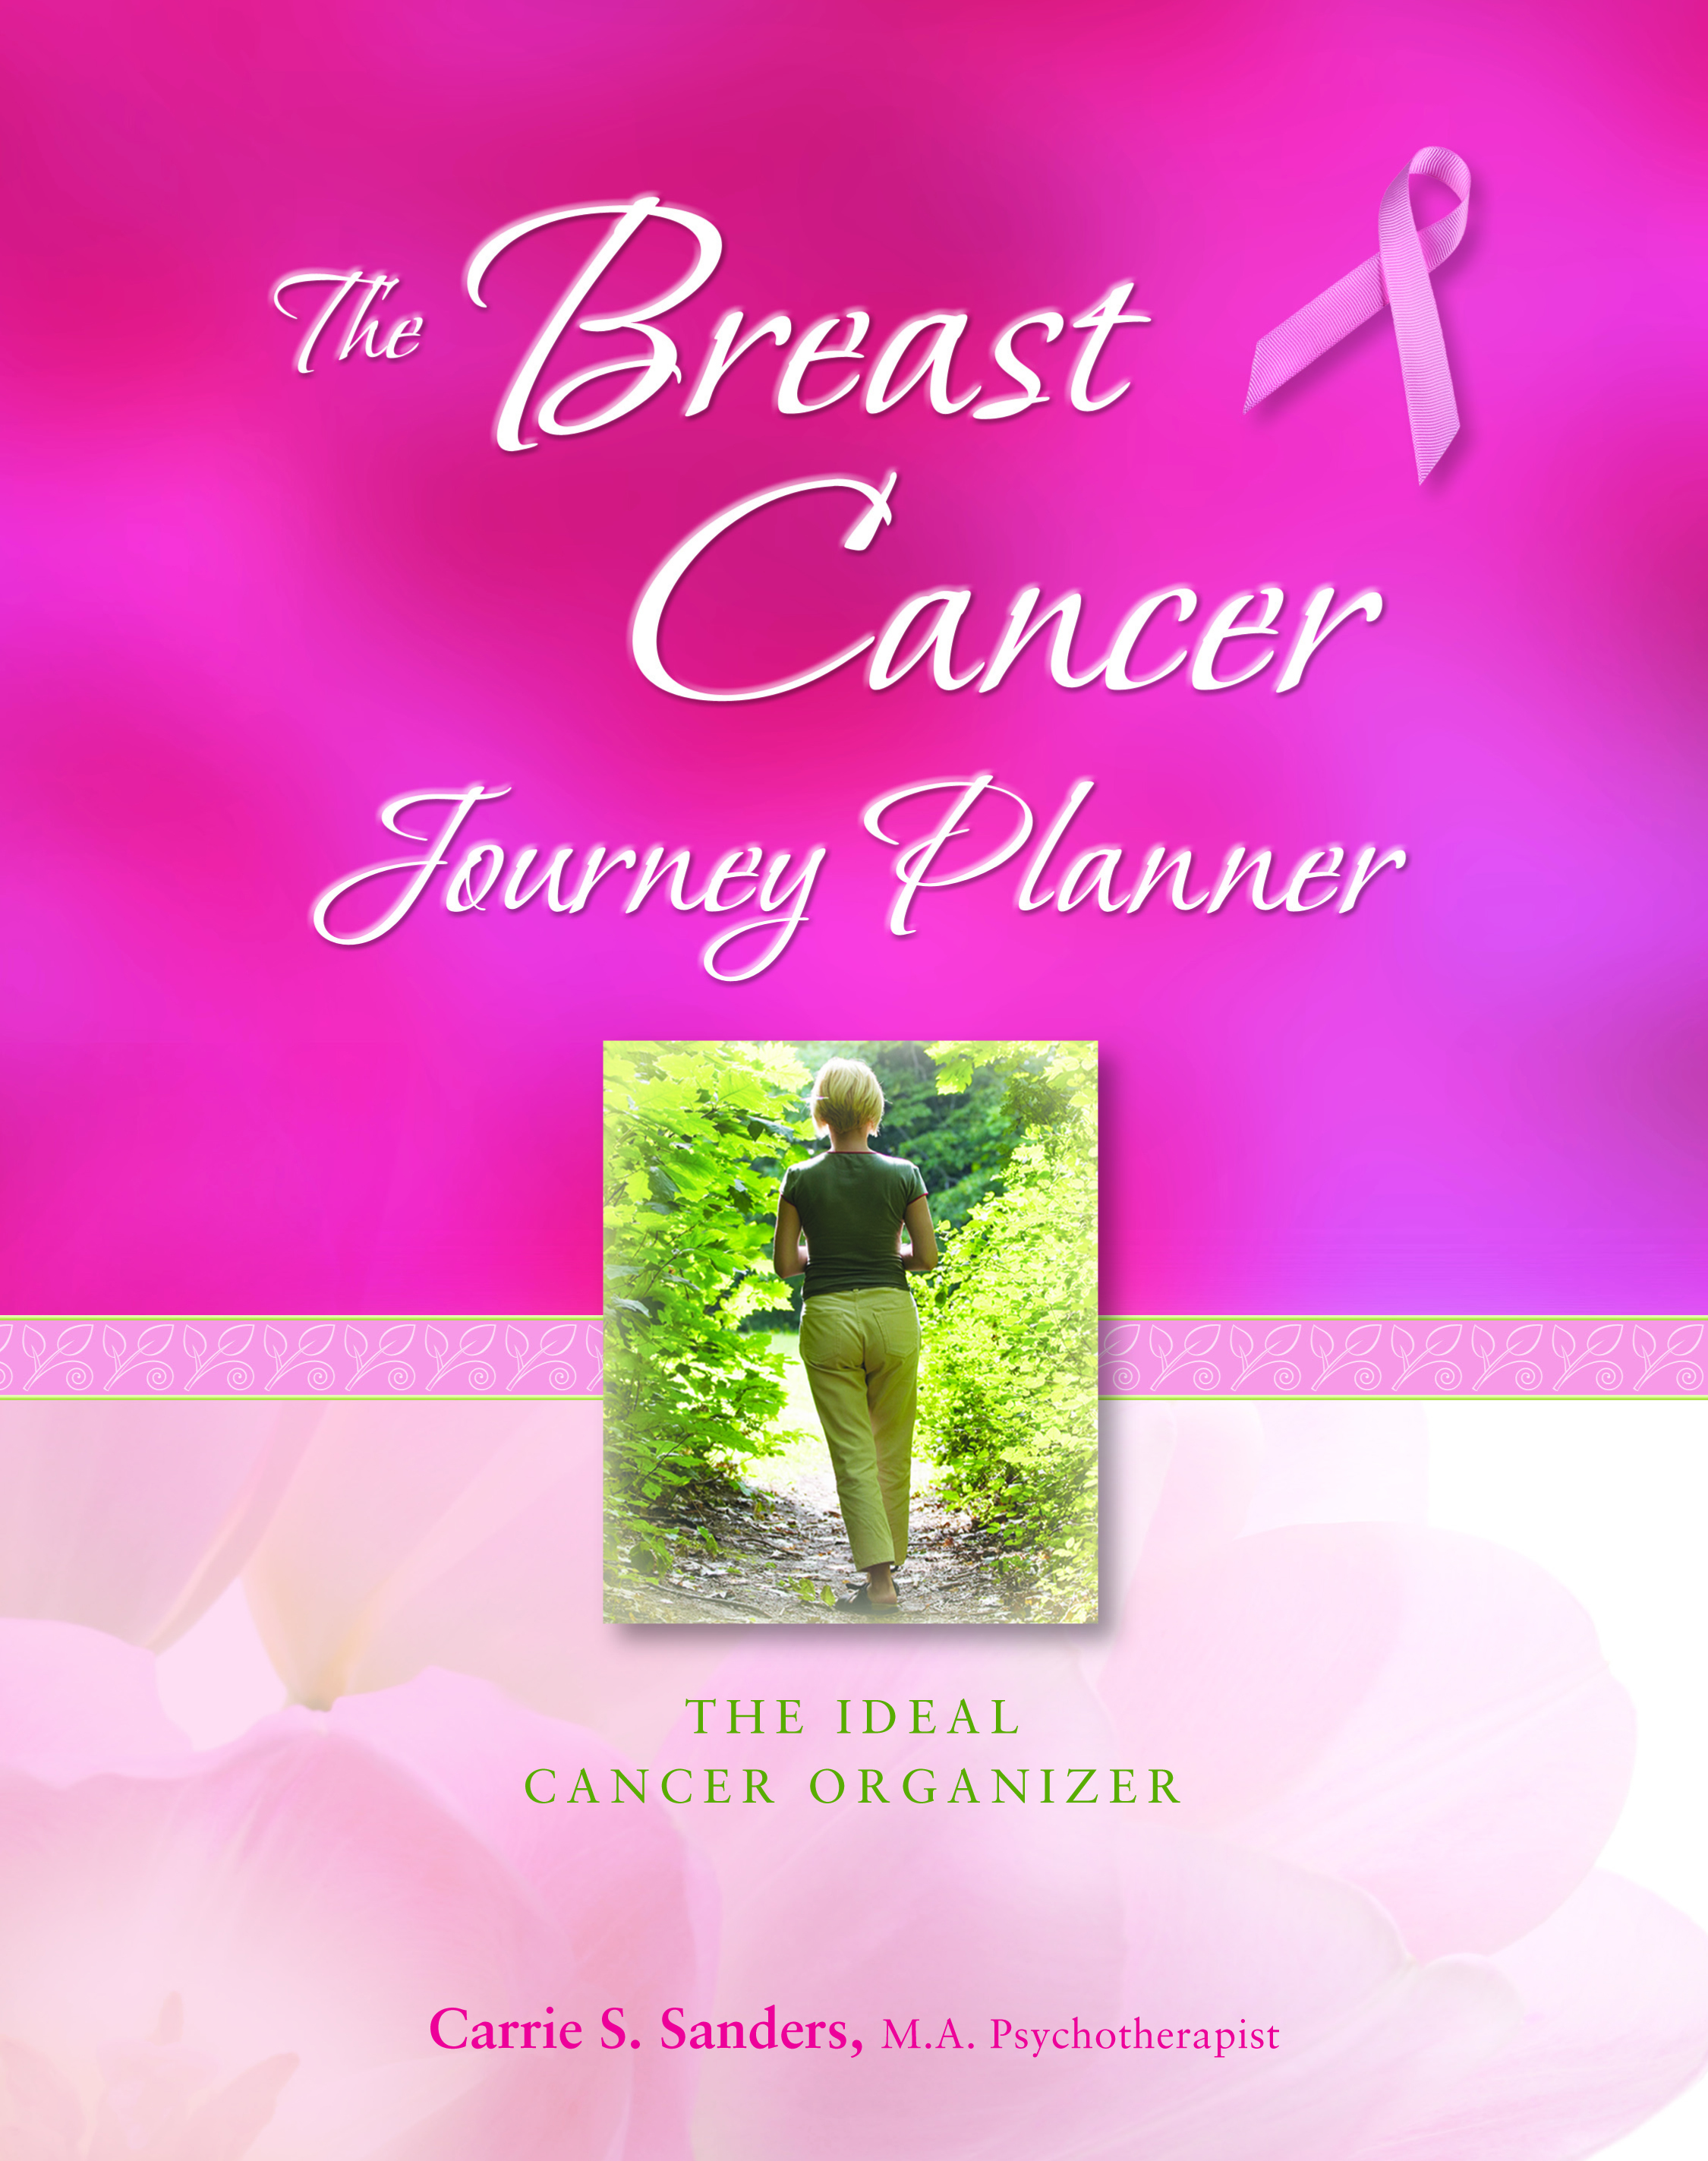 The Breast Cancer Journey Planner